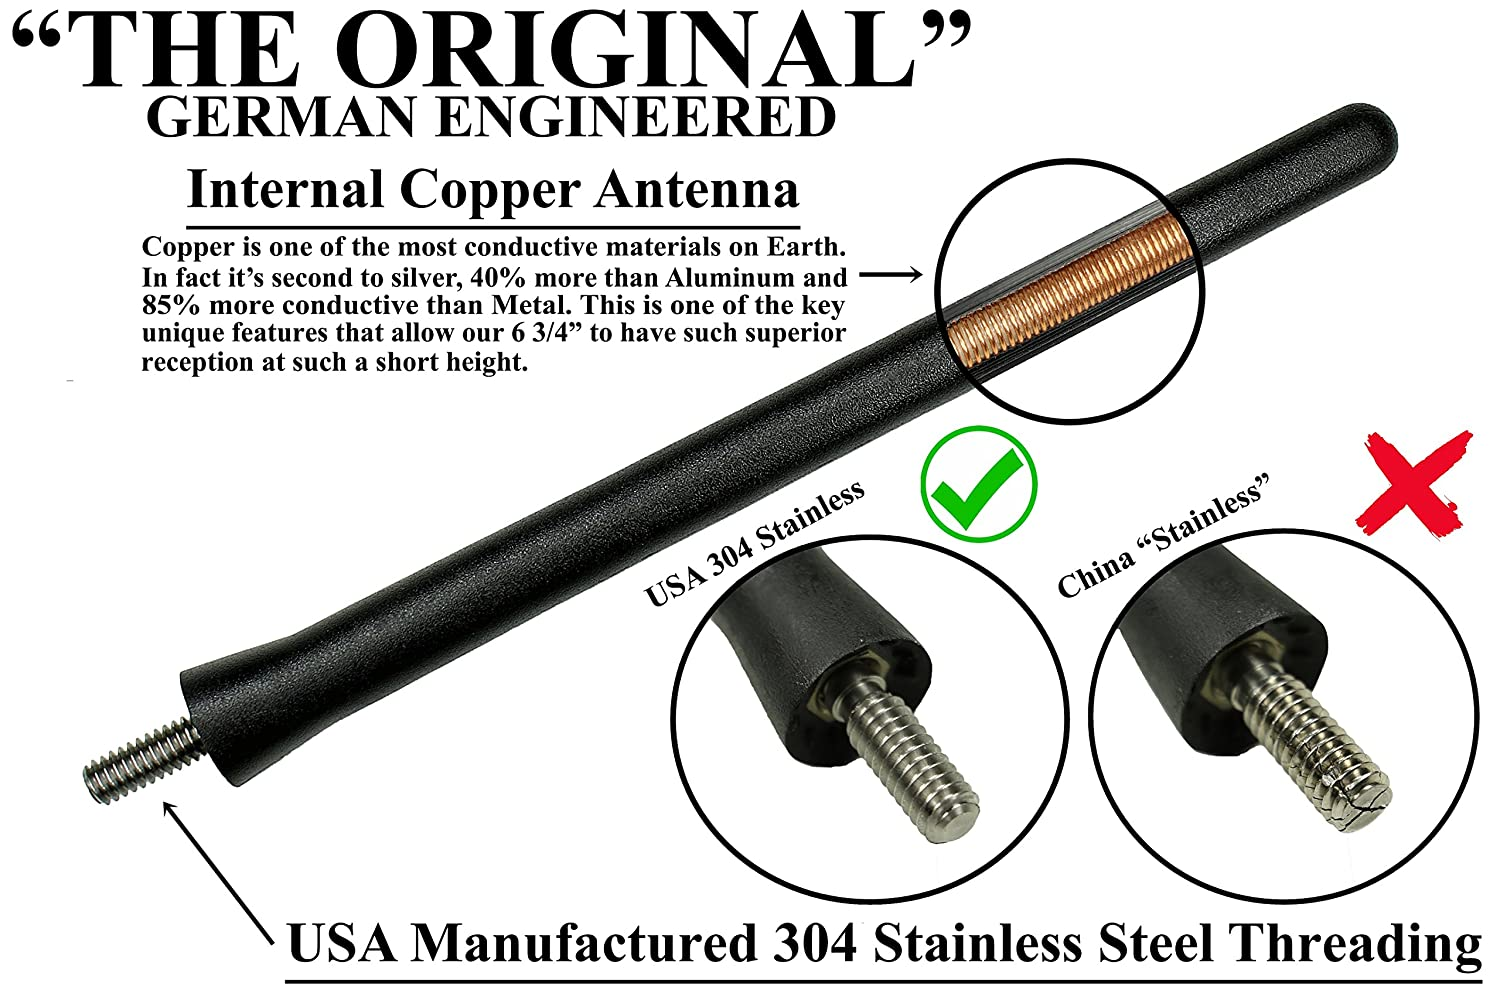 2001-2010 German Engineered Internal Copper Coil 4350469255 AntennaMastsRus - Short Rubber Antenna The Original 6 3//4 INCH is Compatible with Ford Explorer SportTrac Reception Guaranteed